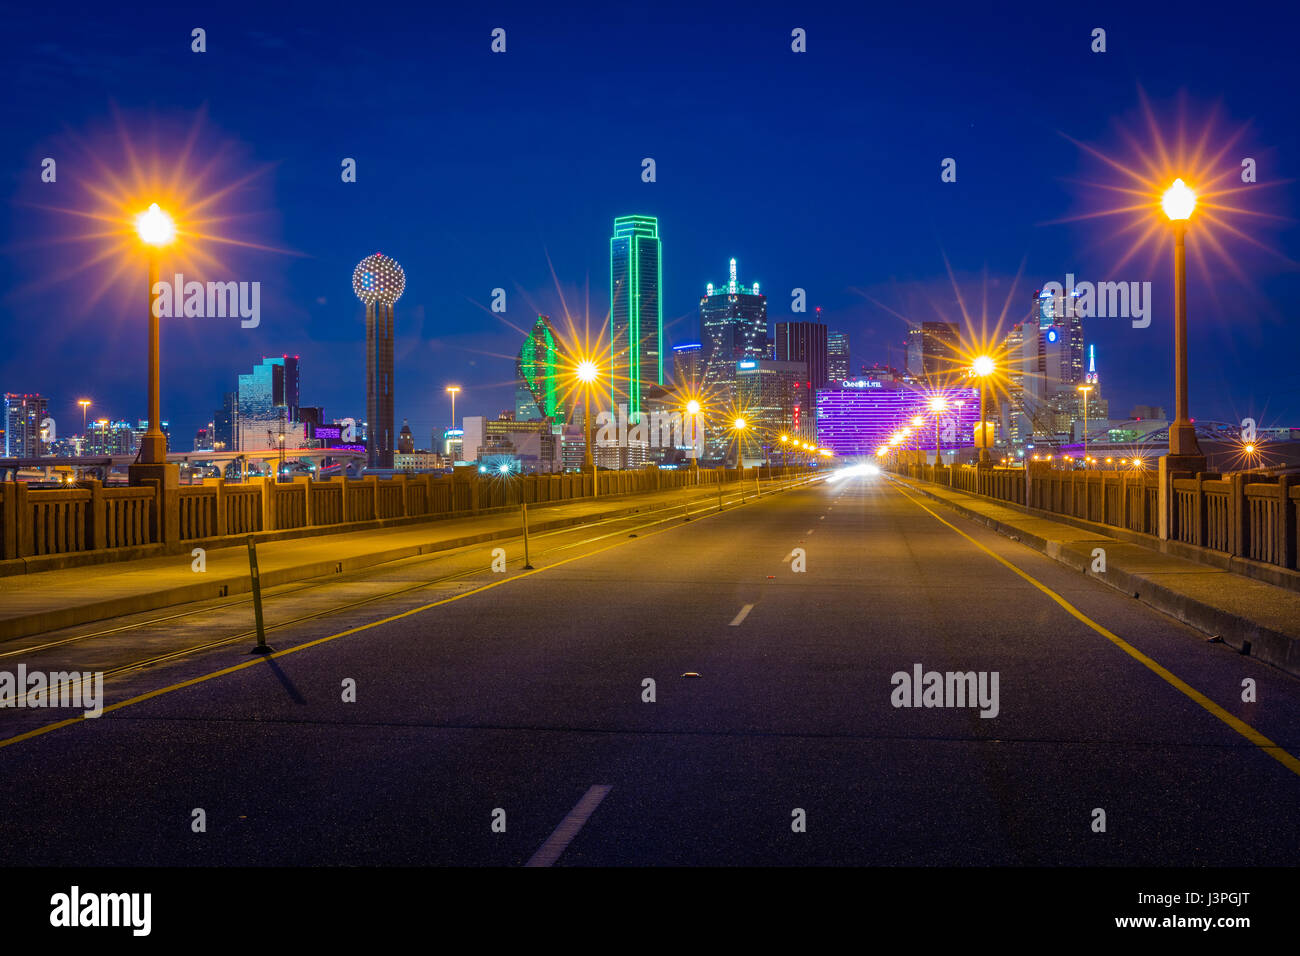 The Margaret Hunt Hill Bridge is a bridge in Dallas, Texas which spans the Trinity River and was built as part of - Stock Image